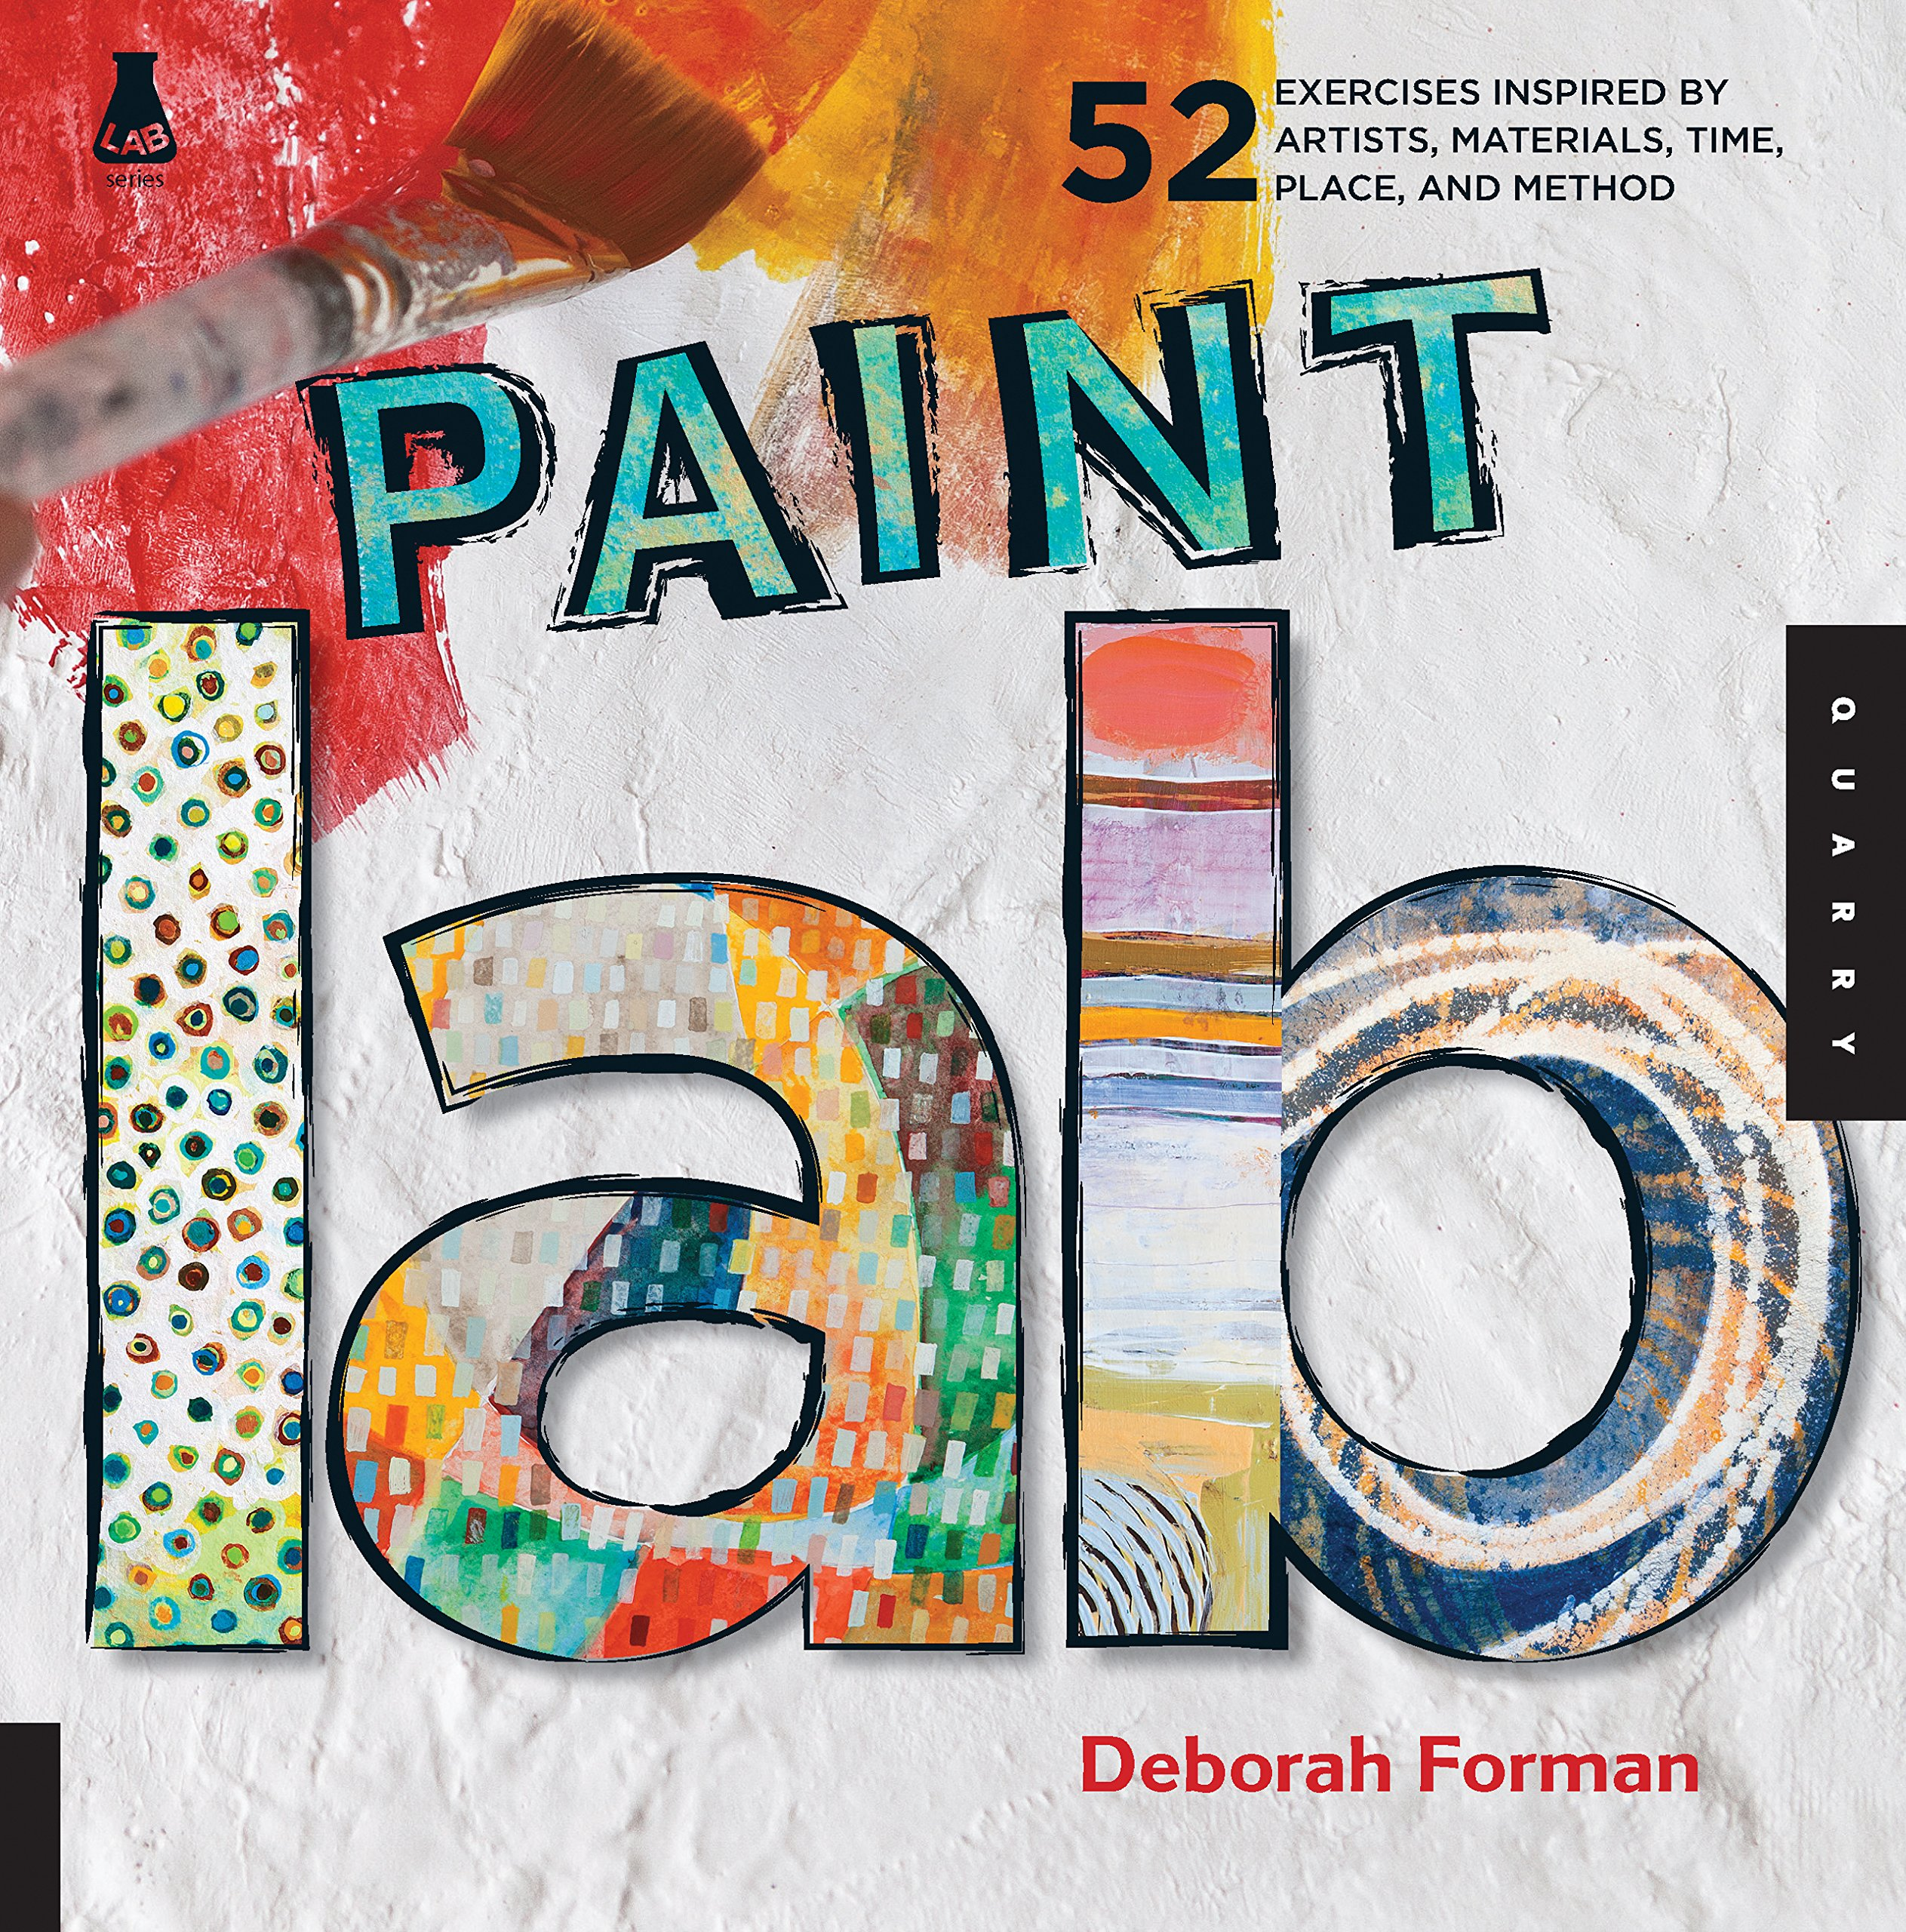 Paint Lab: 52 Exercises inspired by Artists, Materials, Time, Place, and Method (Lab Series) ePub fb2 ebook